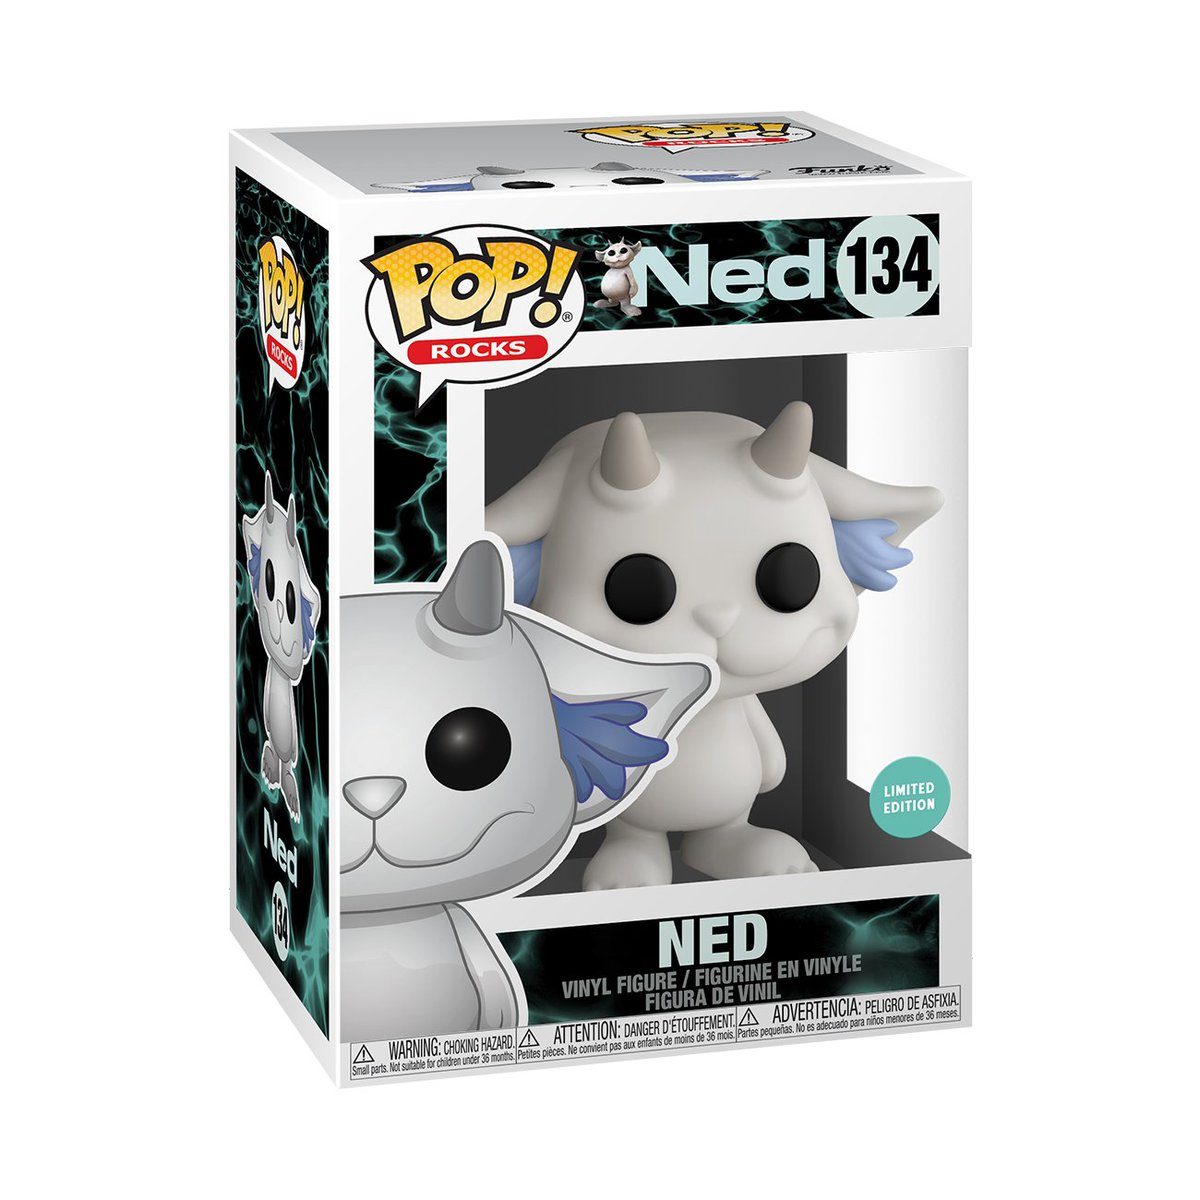 Want to WIN a Limited-Edition NED Pop!? RT & follow @OriginalFunko for a chance to WIN!  #Funko #Pop #Exclusive #Giveaway #FunkoFamily #NED #TwentyOnePilots